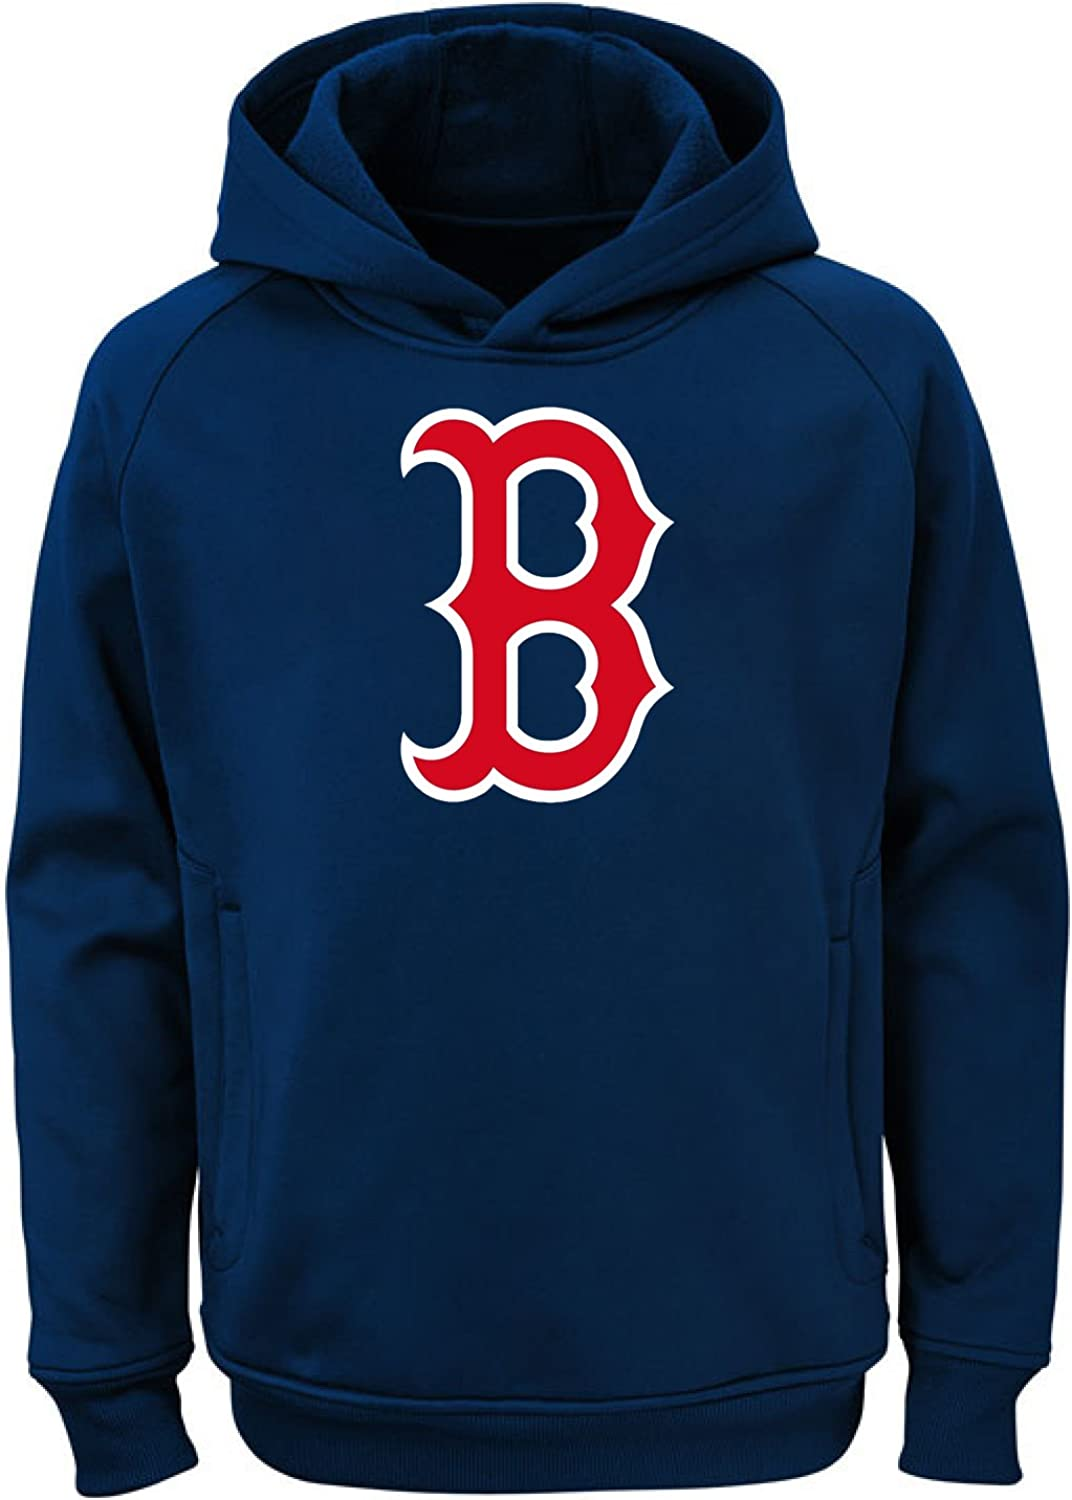 Outerstuff MLB Youth Team Color Performance Primary Logo Pullover Sweatshirt Hoodie